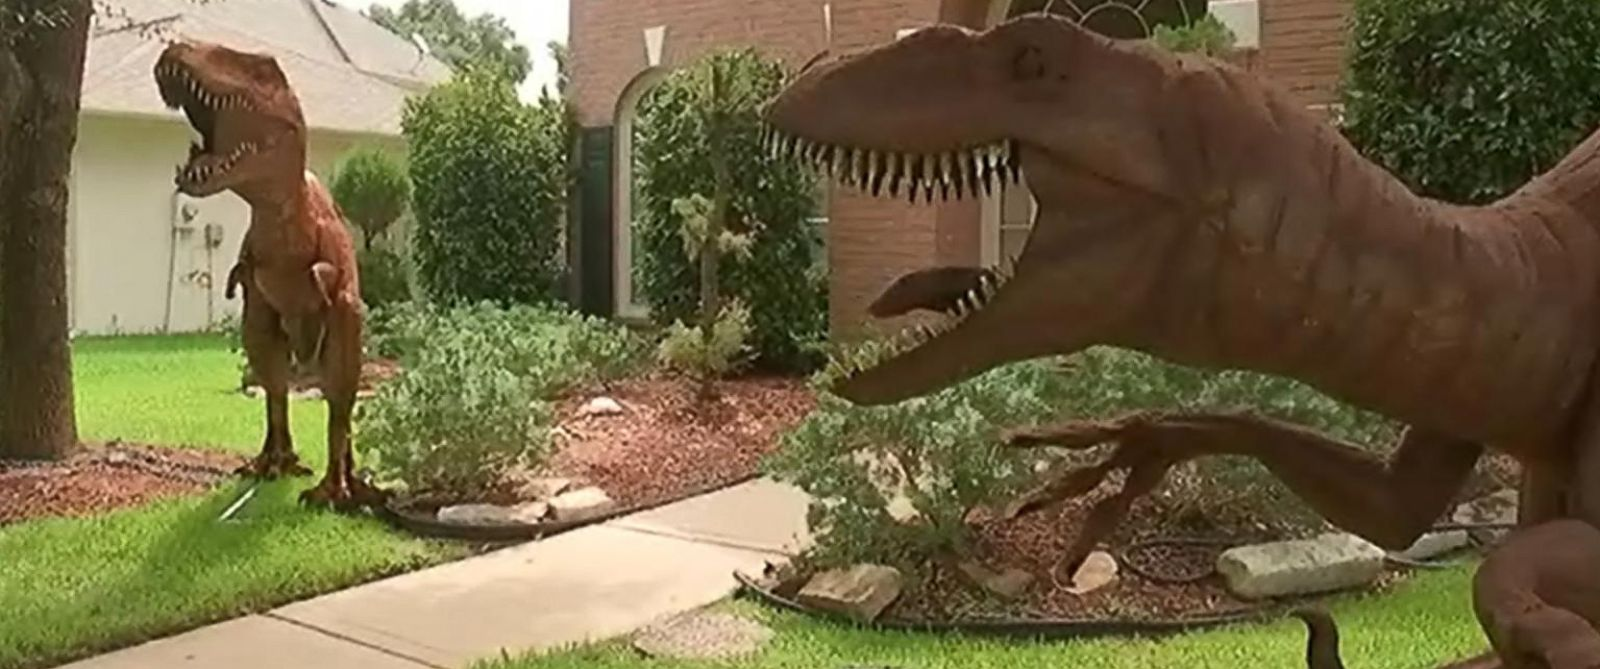 Dinosaur Lawn Decorations Dinosaurs On Couples Front Lawn Yard Turns Heads In Planned